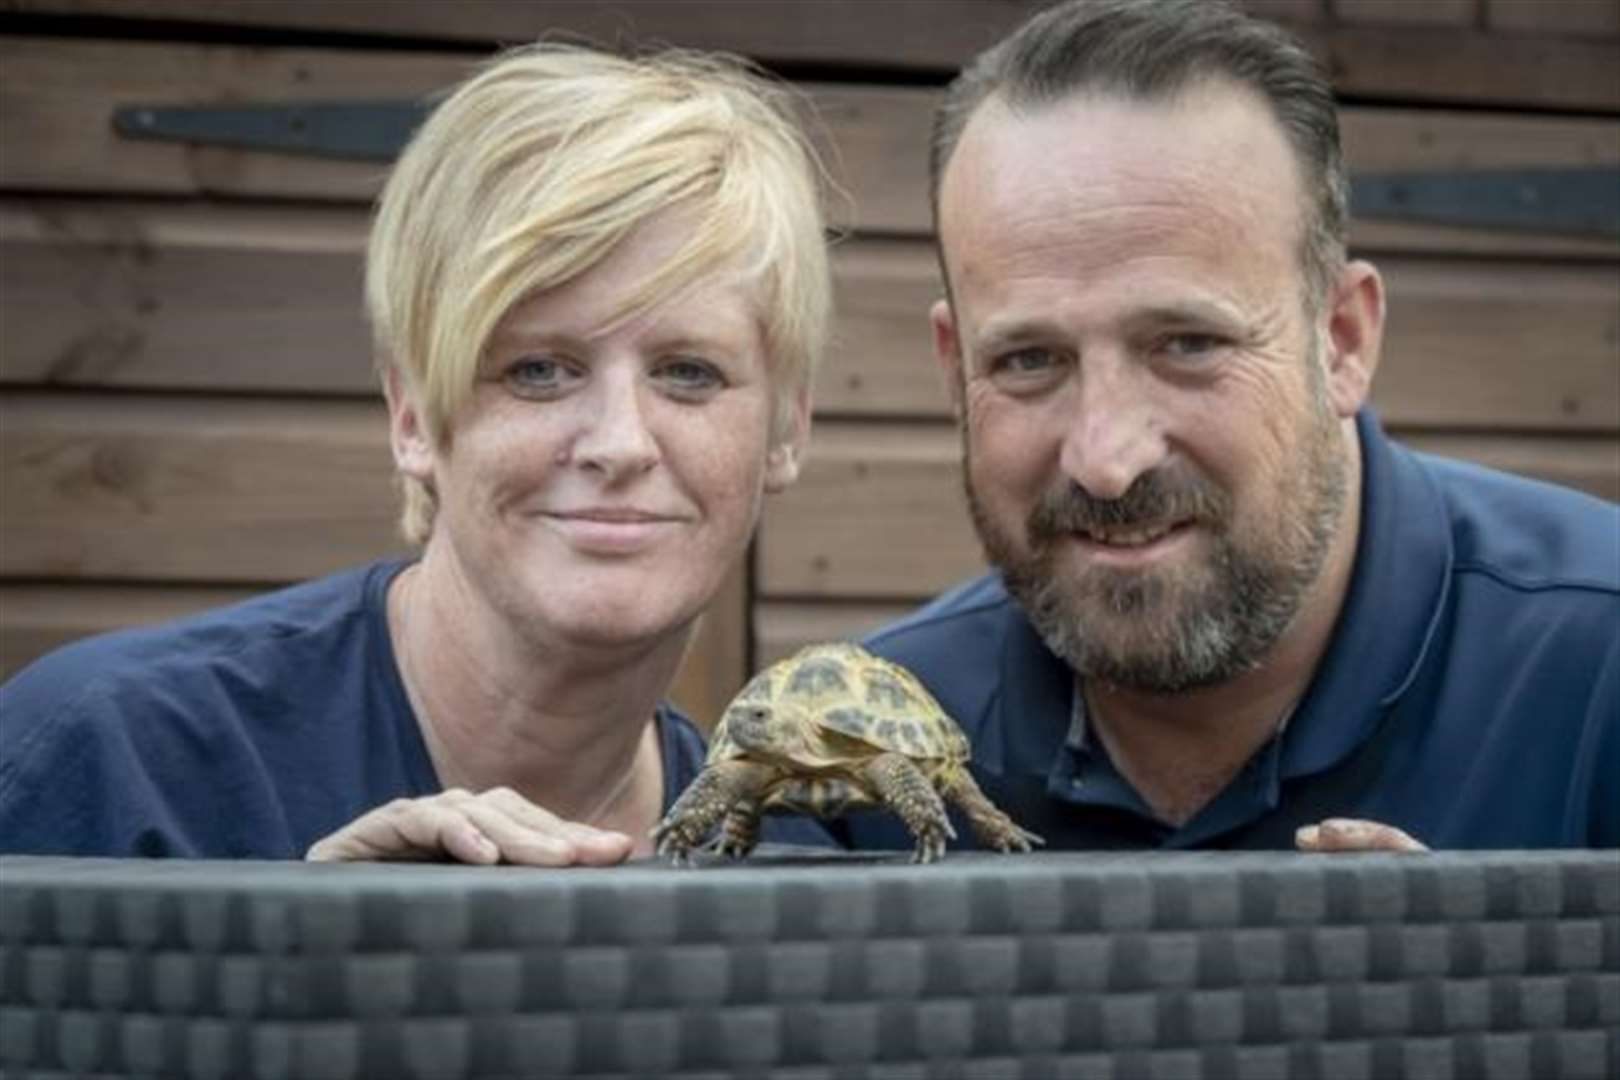 Tortoise rescued in Cambridge garden after 28 days in a drainpipe